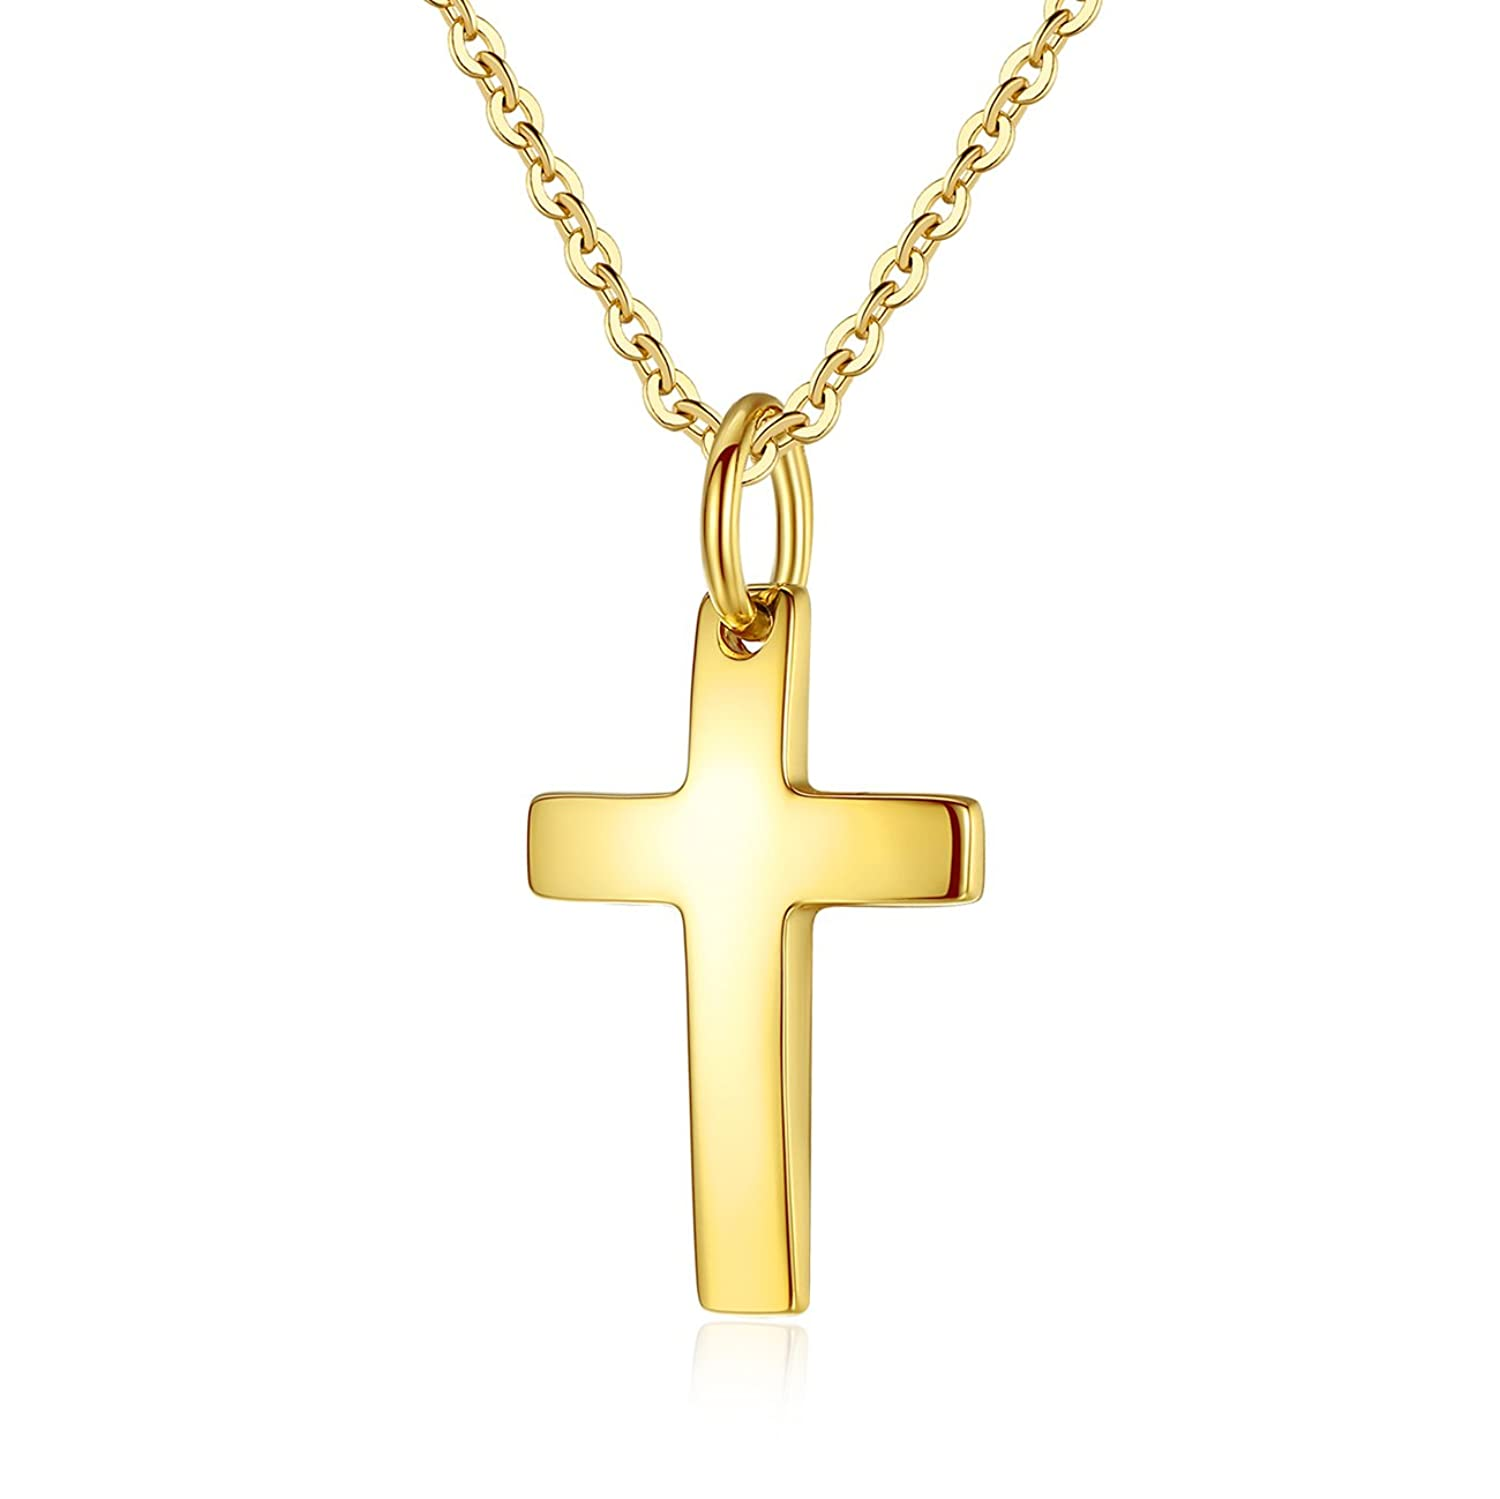 MgTree Simple Stainless Steel Polished Finish Cross Pendant Necklace for Women Men, 20-24 Chain,3 Color